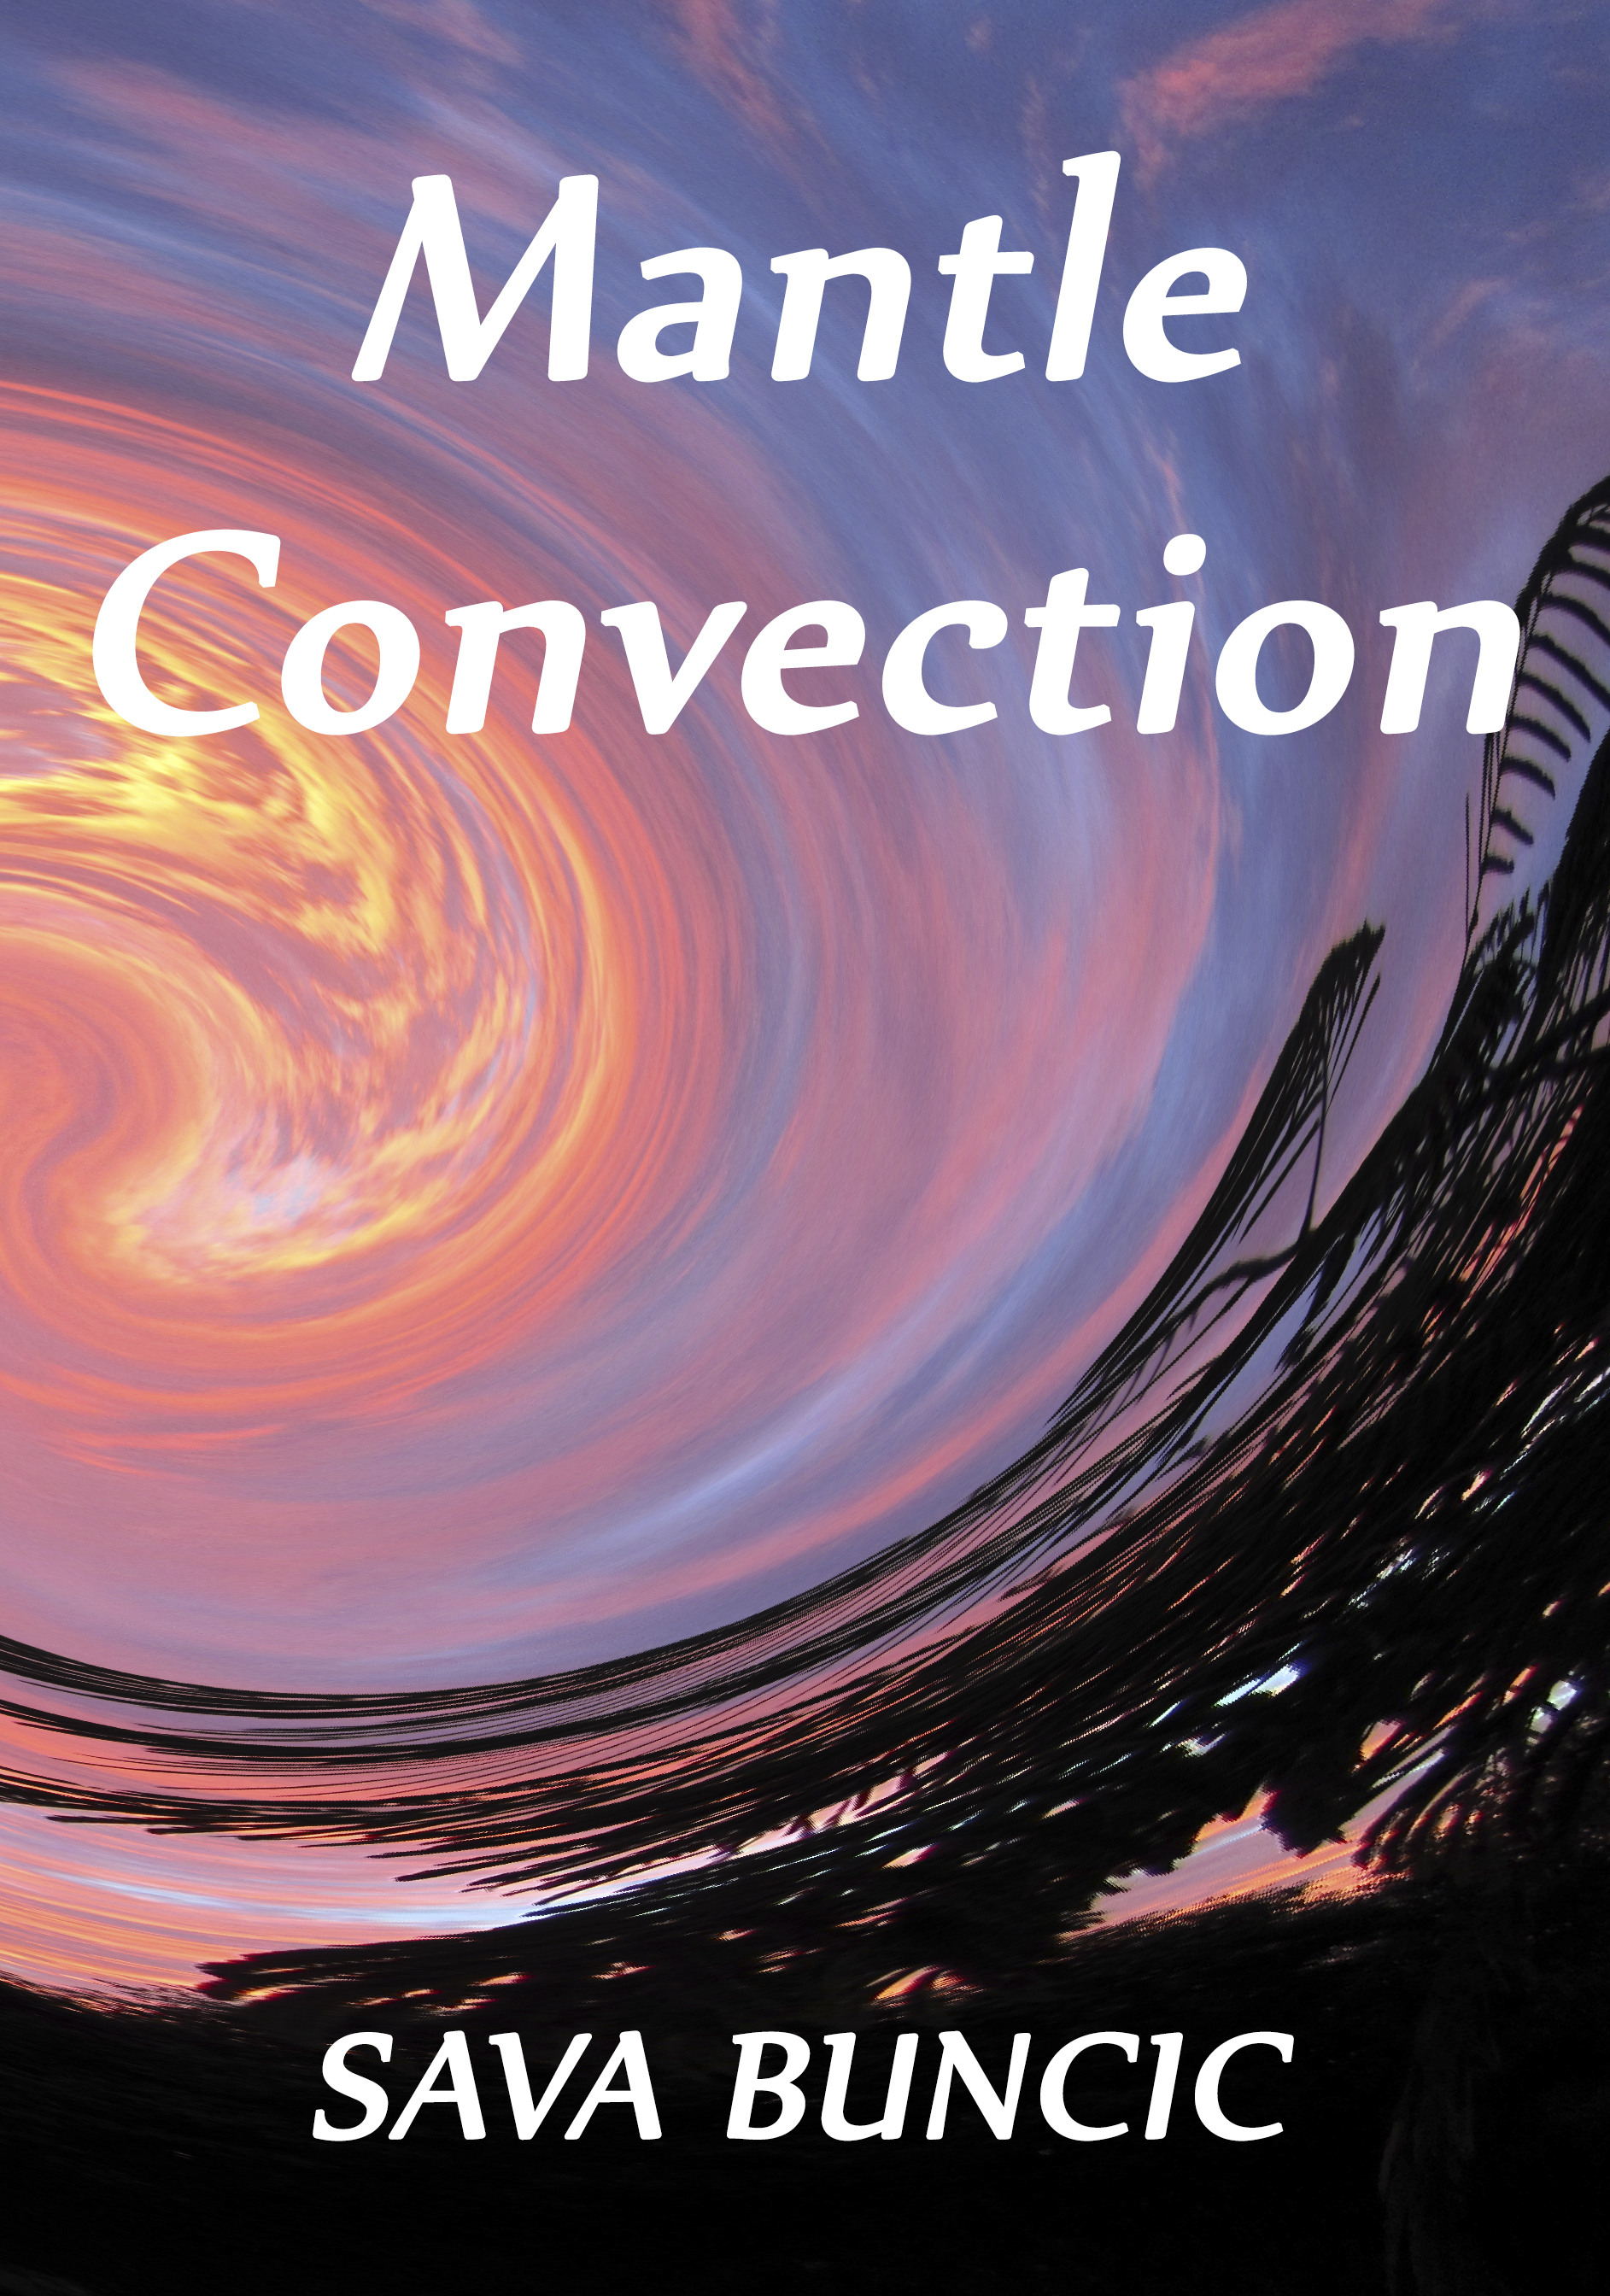 Mantle Convection  by  Sava Buncic